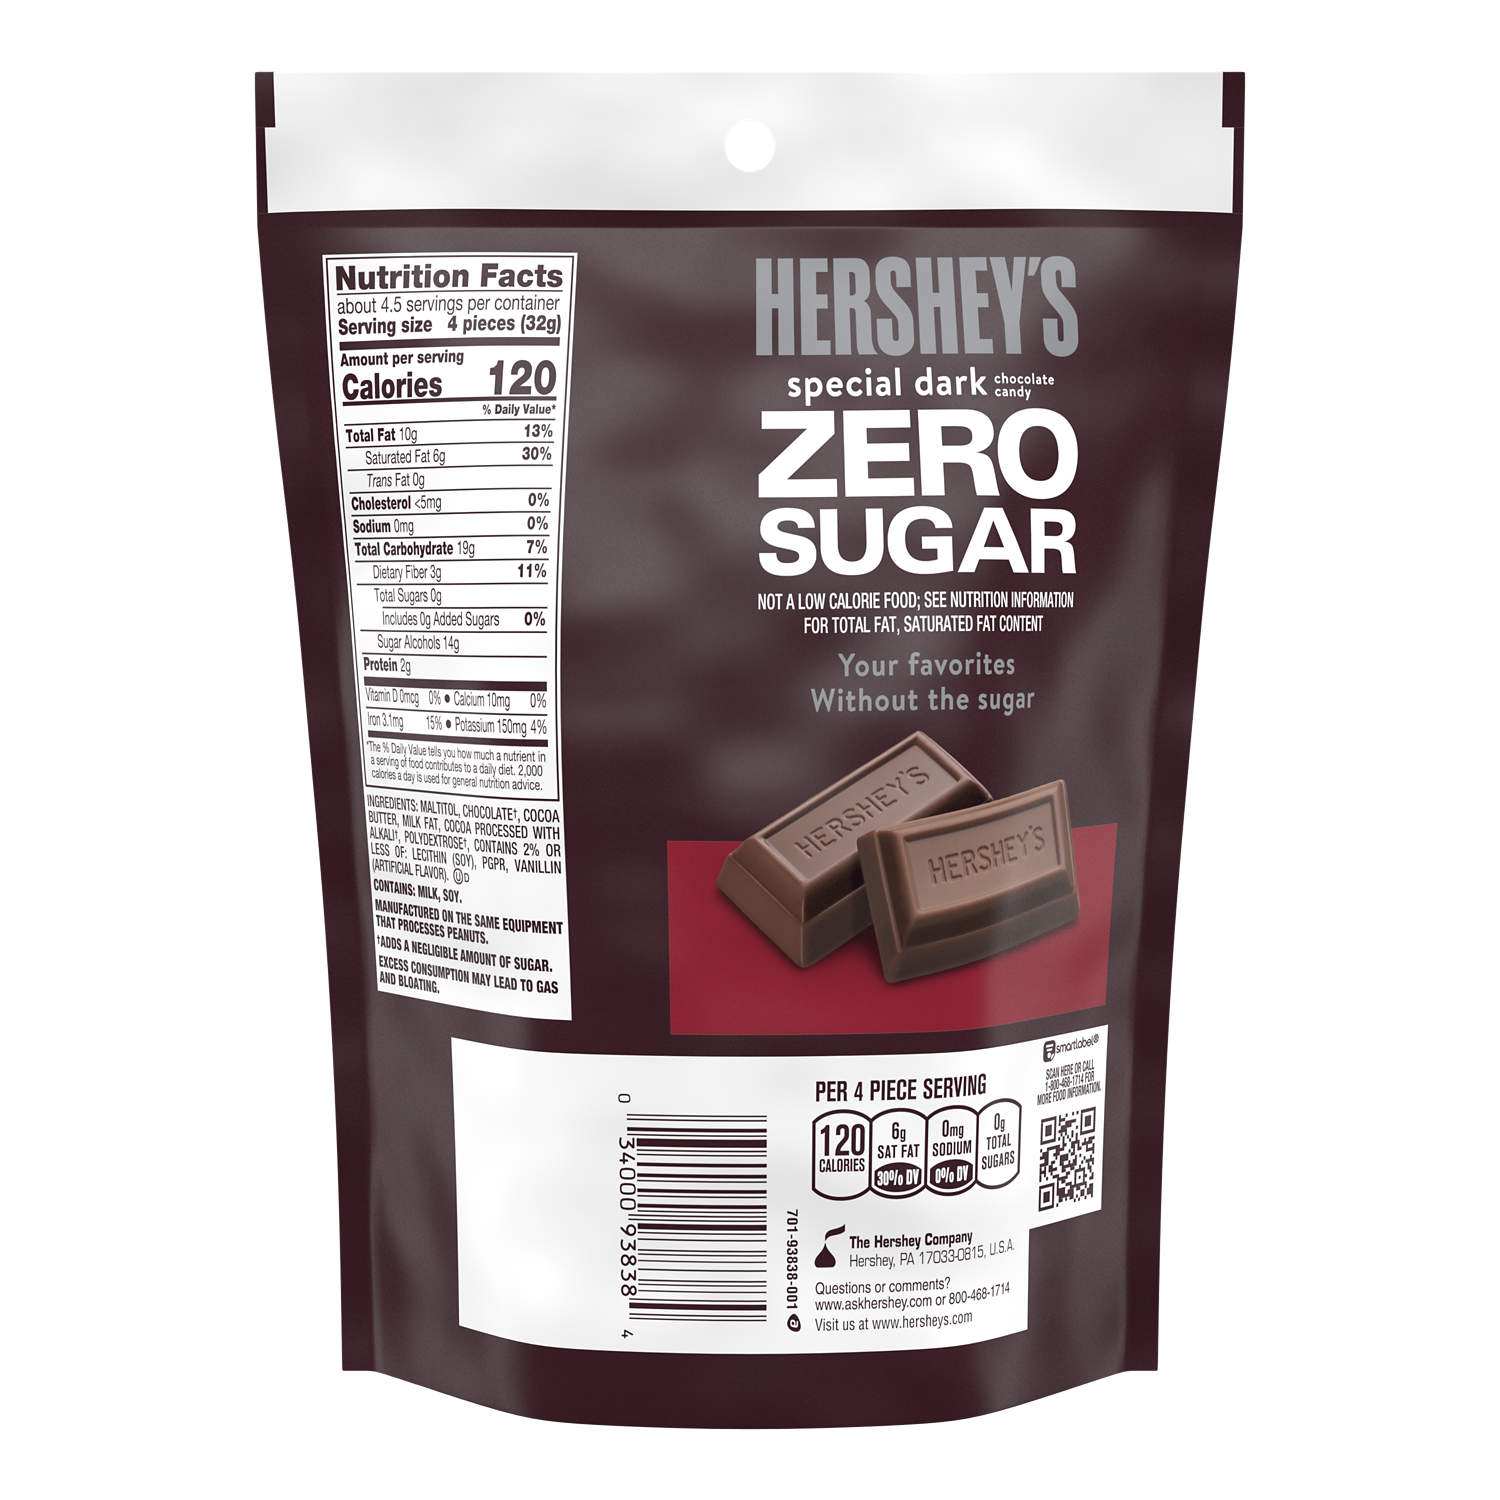 HERSHEY'S SPECIAL DARK Zero Sugar Chocolate Candy Bars, 5.1 oz bag - Back of Package